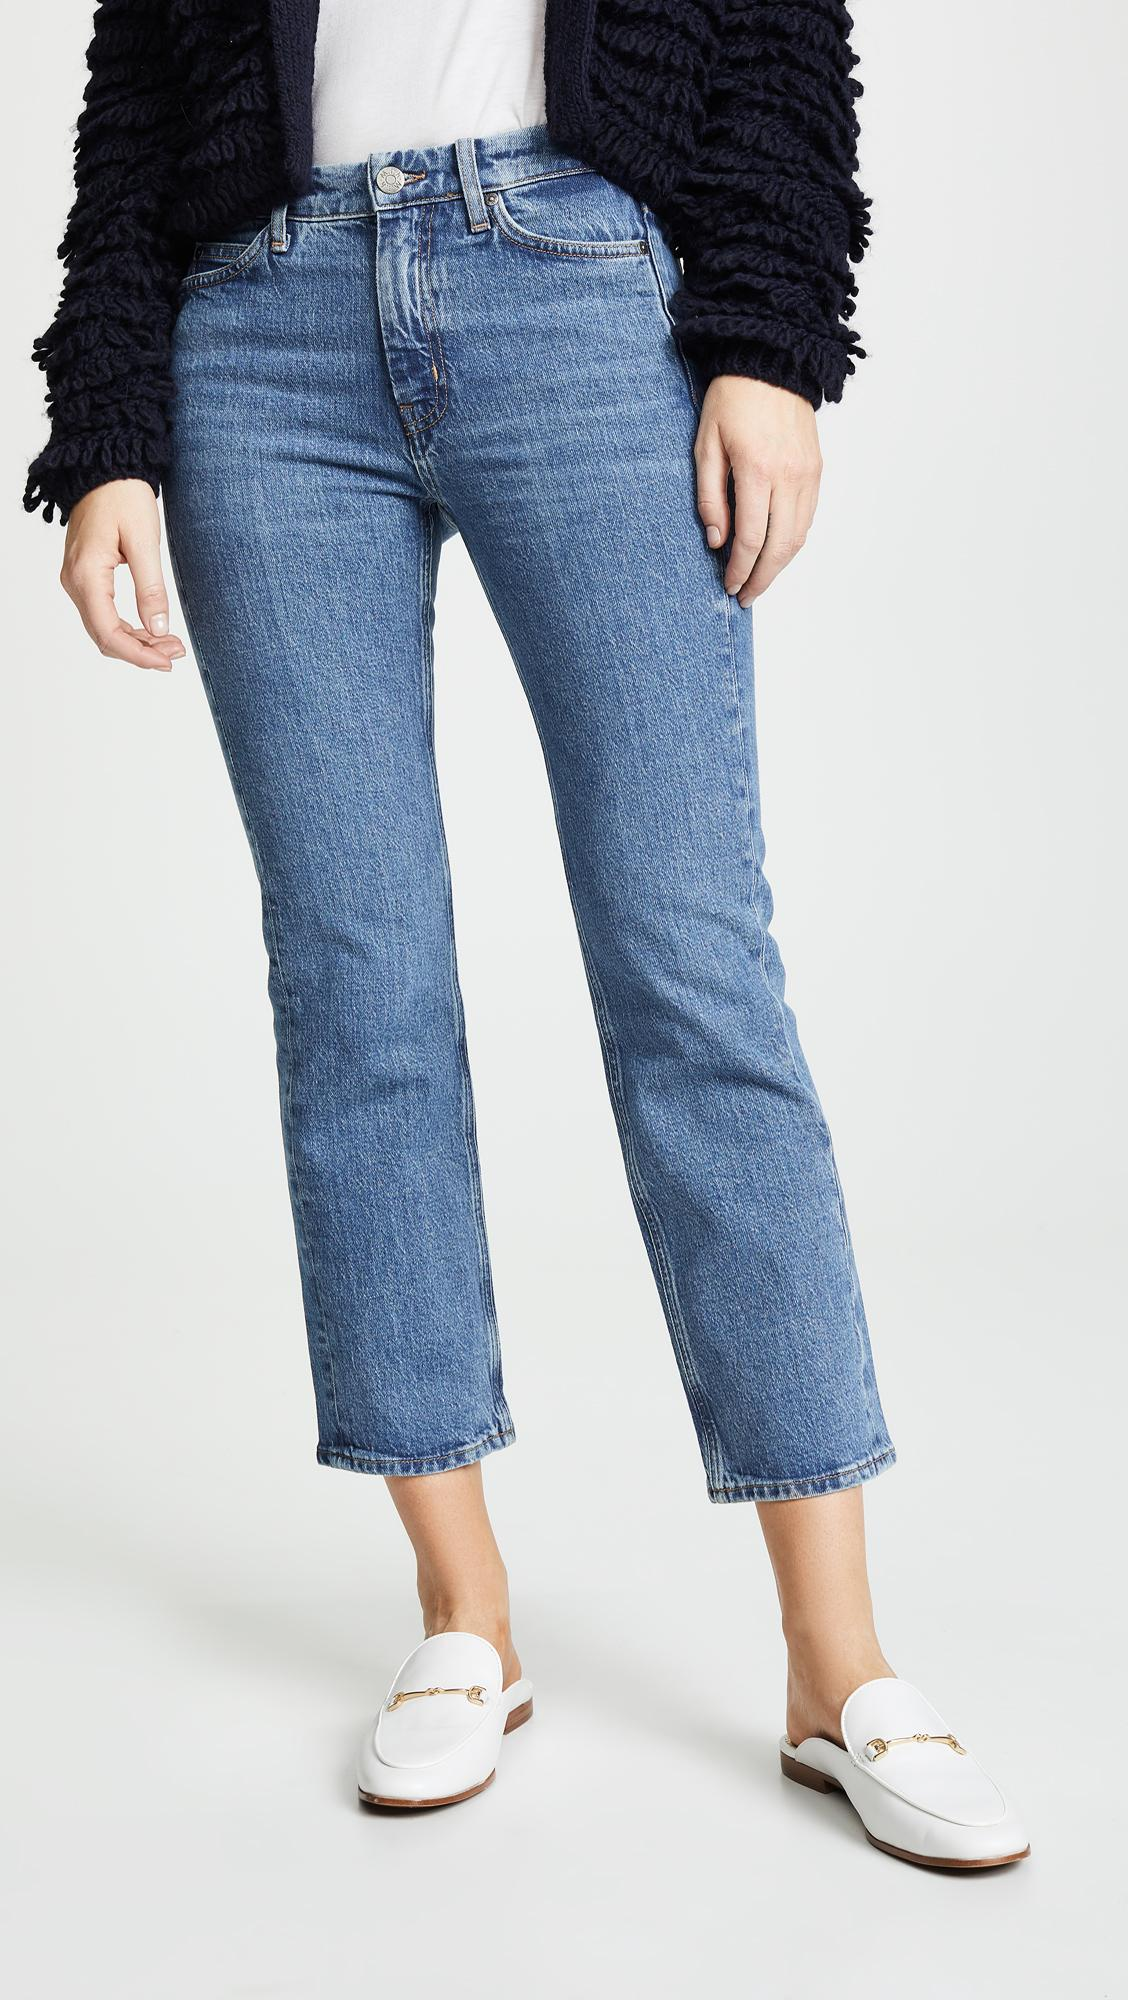 dc5d6f1916b2 mih-Calico-The-Daily-Crop-High-Rise-Straight-Jeans.jpeg